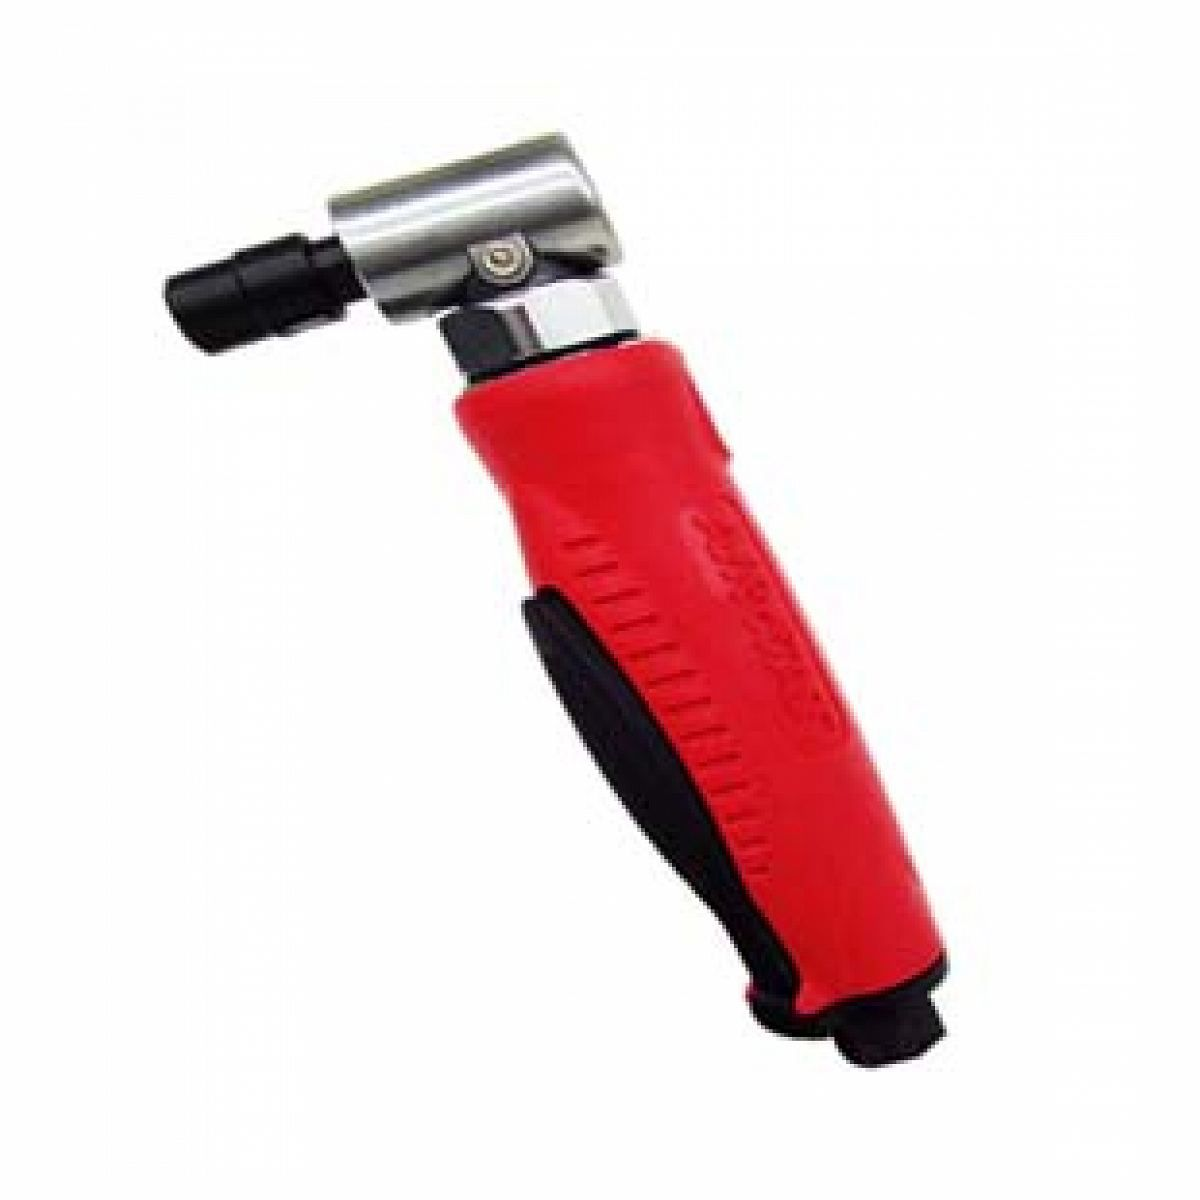 AIRCAT 6255 Professional Series Red Composite Angle Die Grinder with Angled Gear Mechanism